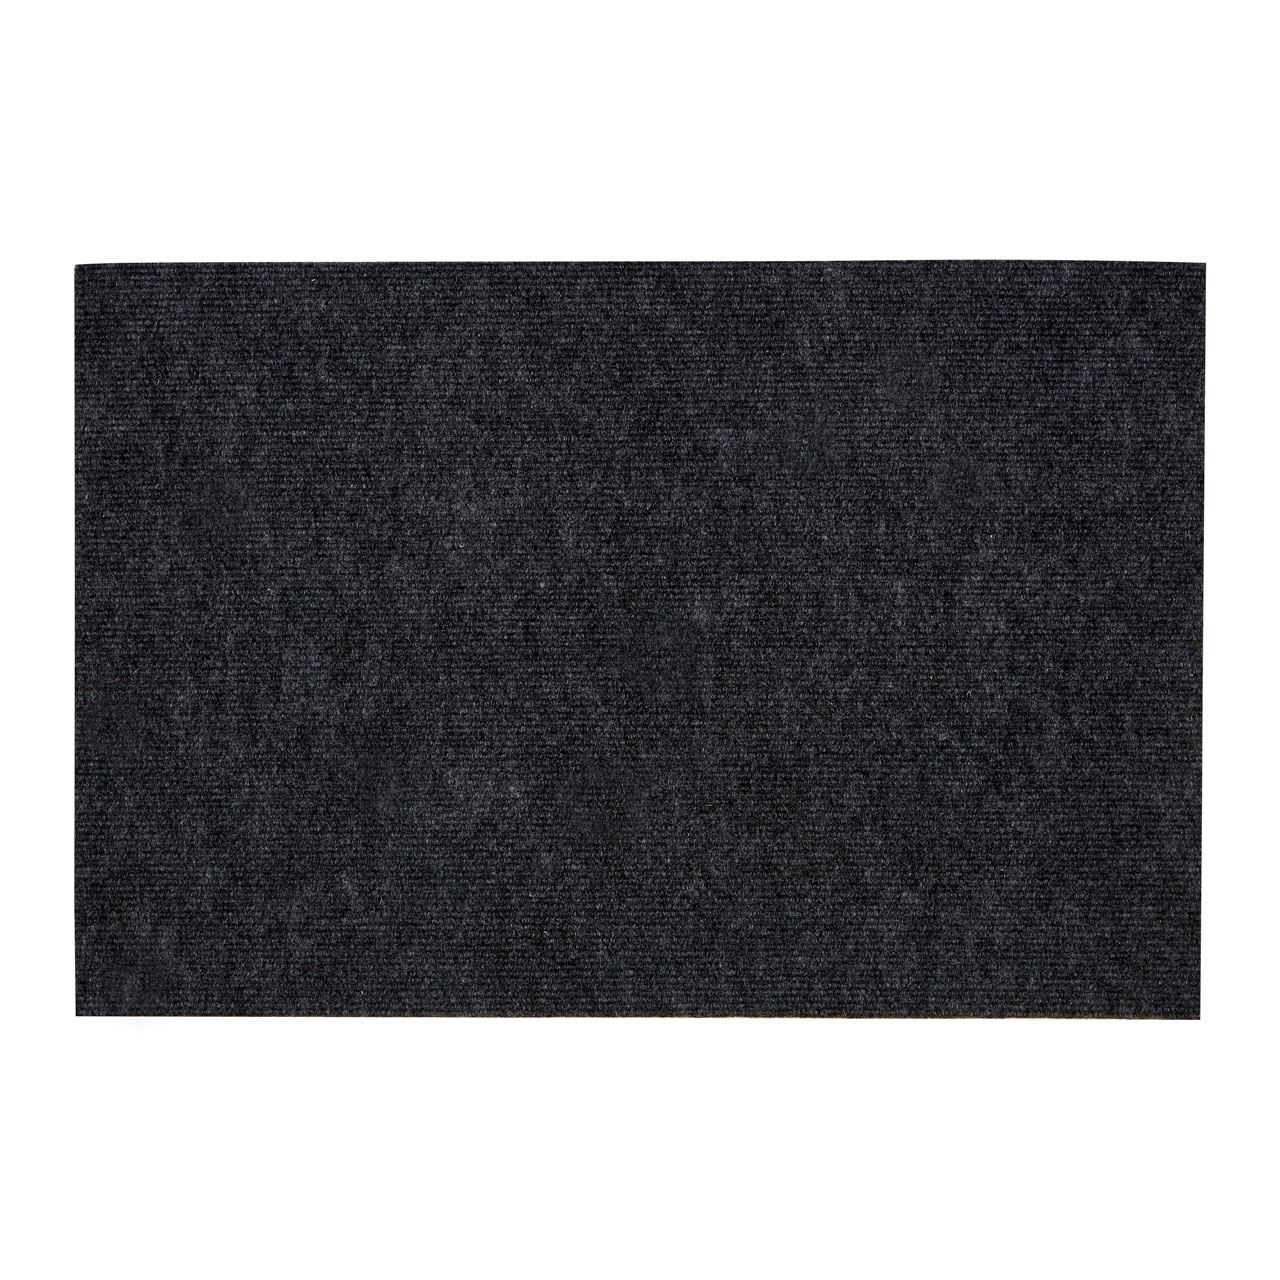 Indoor outdoor door mat non slip light and dark grey colour for Indoor front door mats